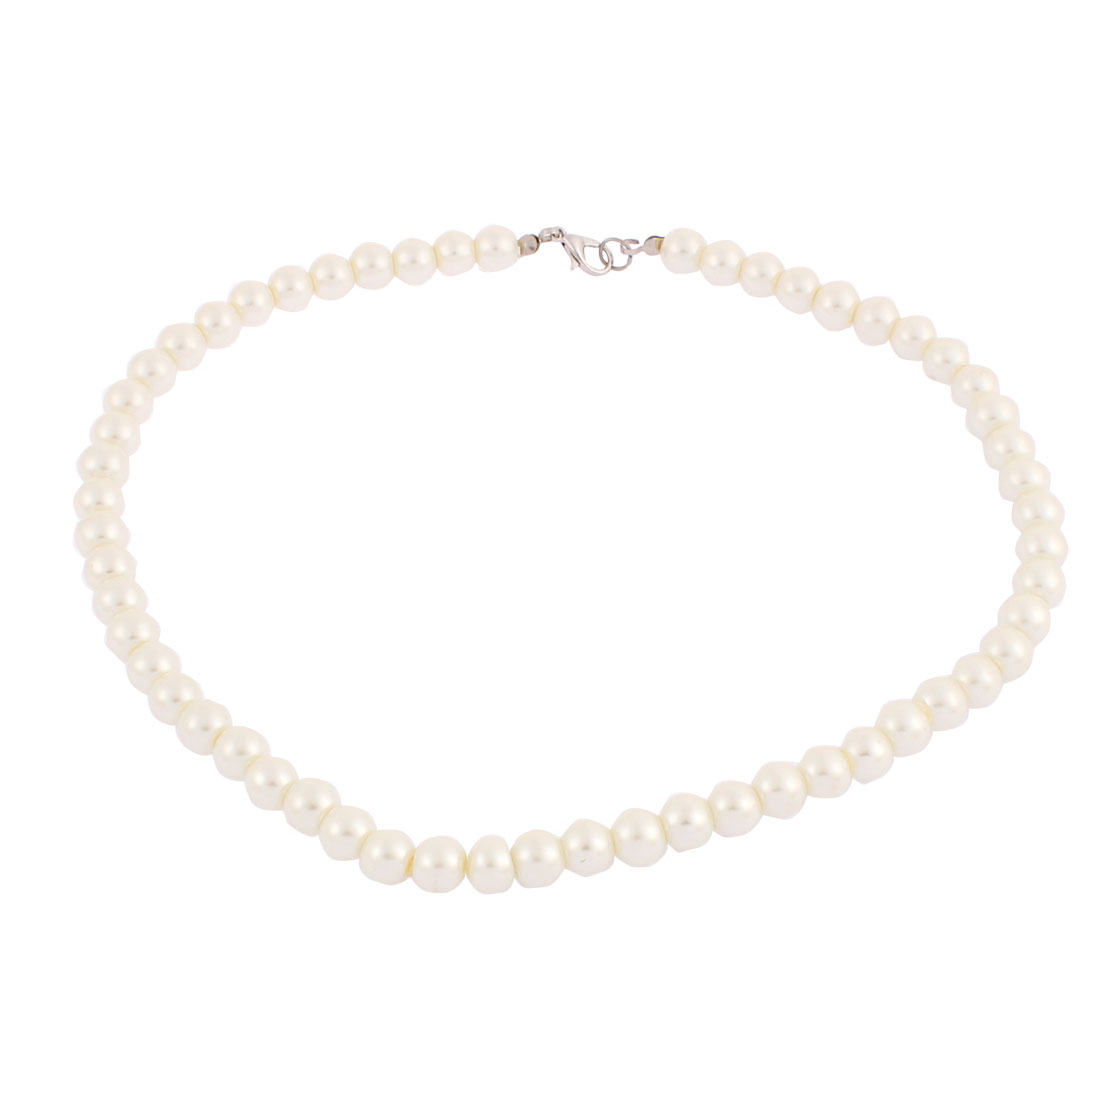 Wedding Faux Round Imitation Pearl Beaded Linked Necklace Off White 45cm Length